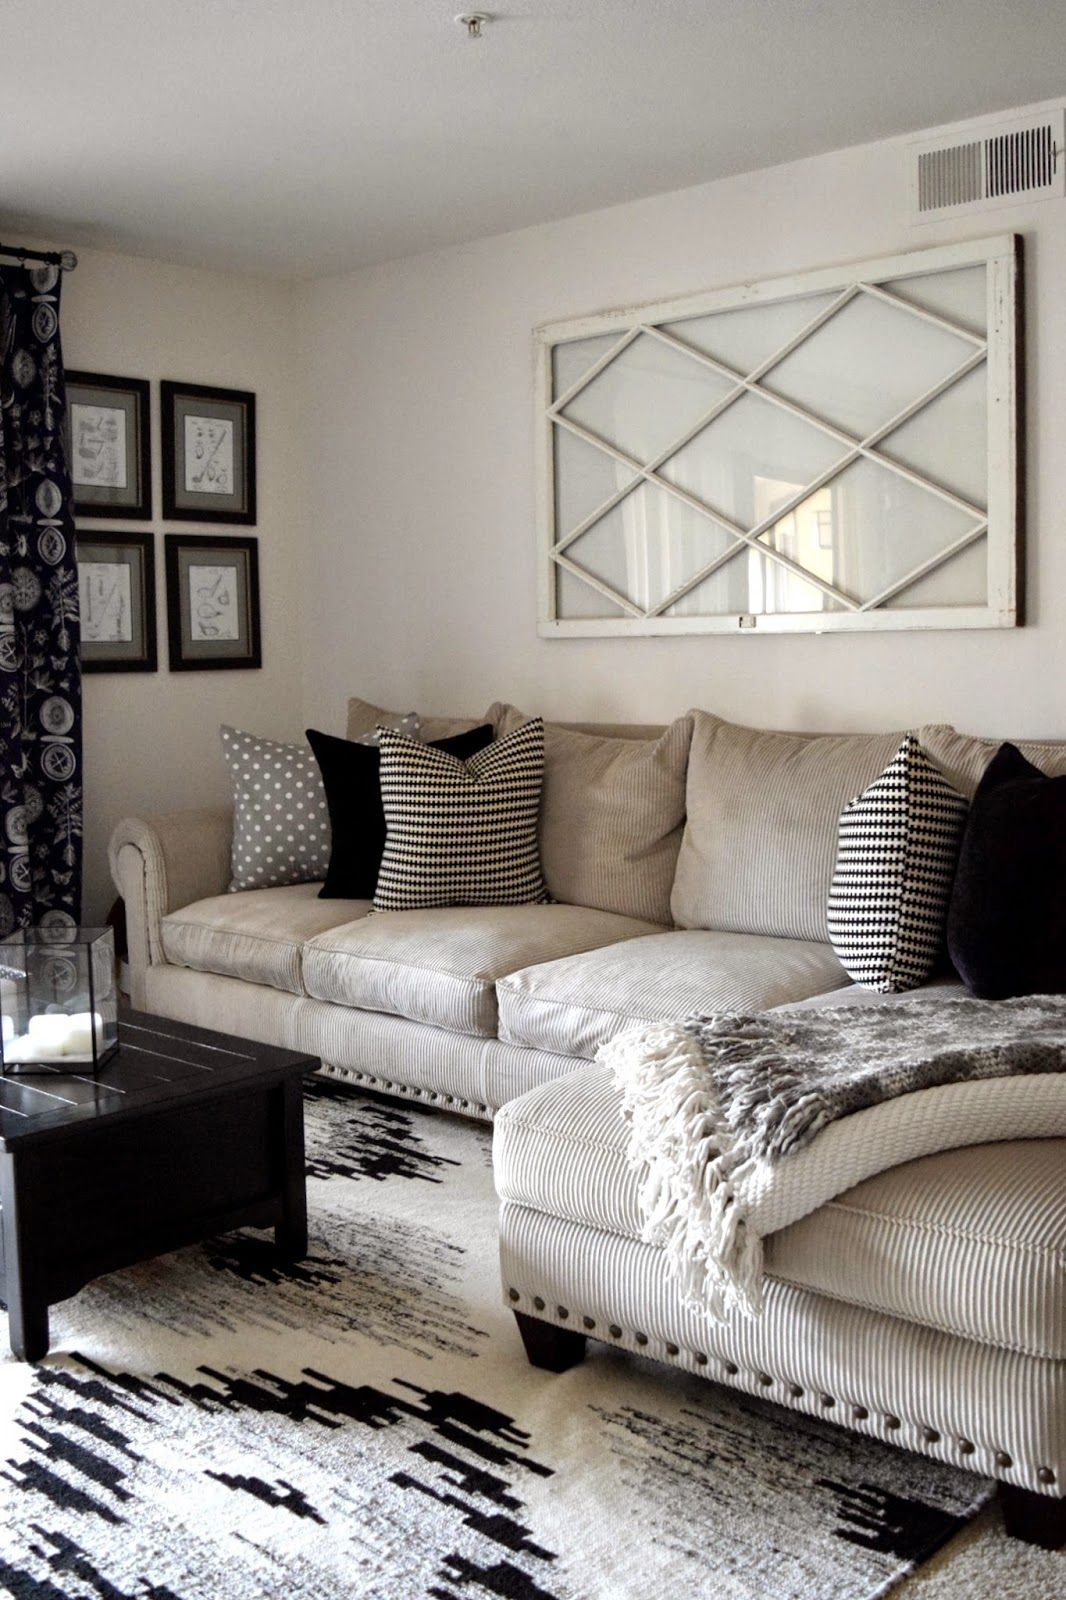 Made2Make Home Tour Neutral Living RoomsCozy RoomsLiving Room Ideas1st ApartmentApartment